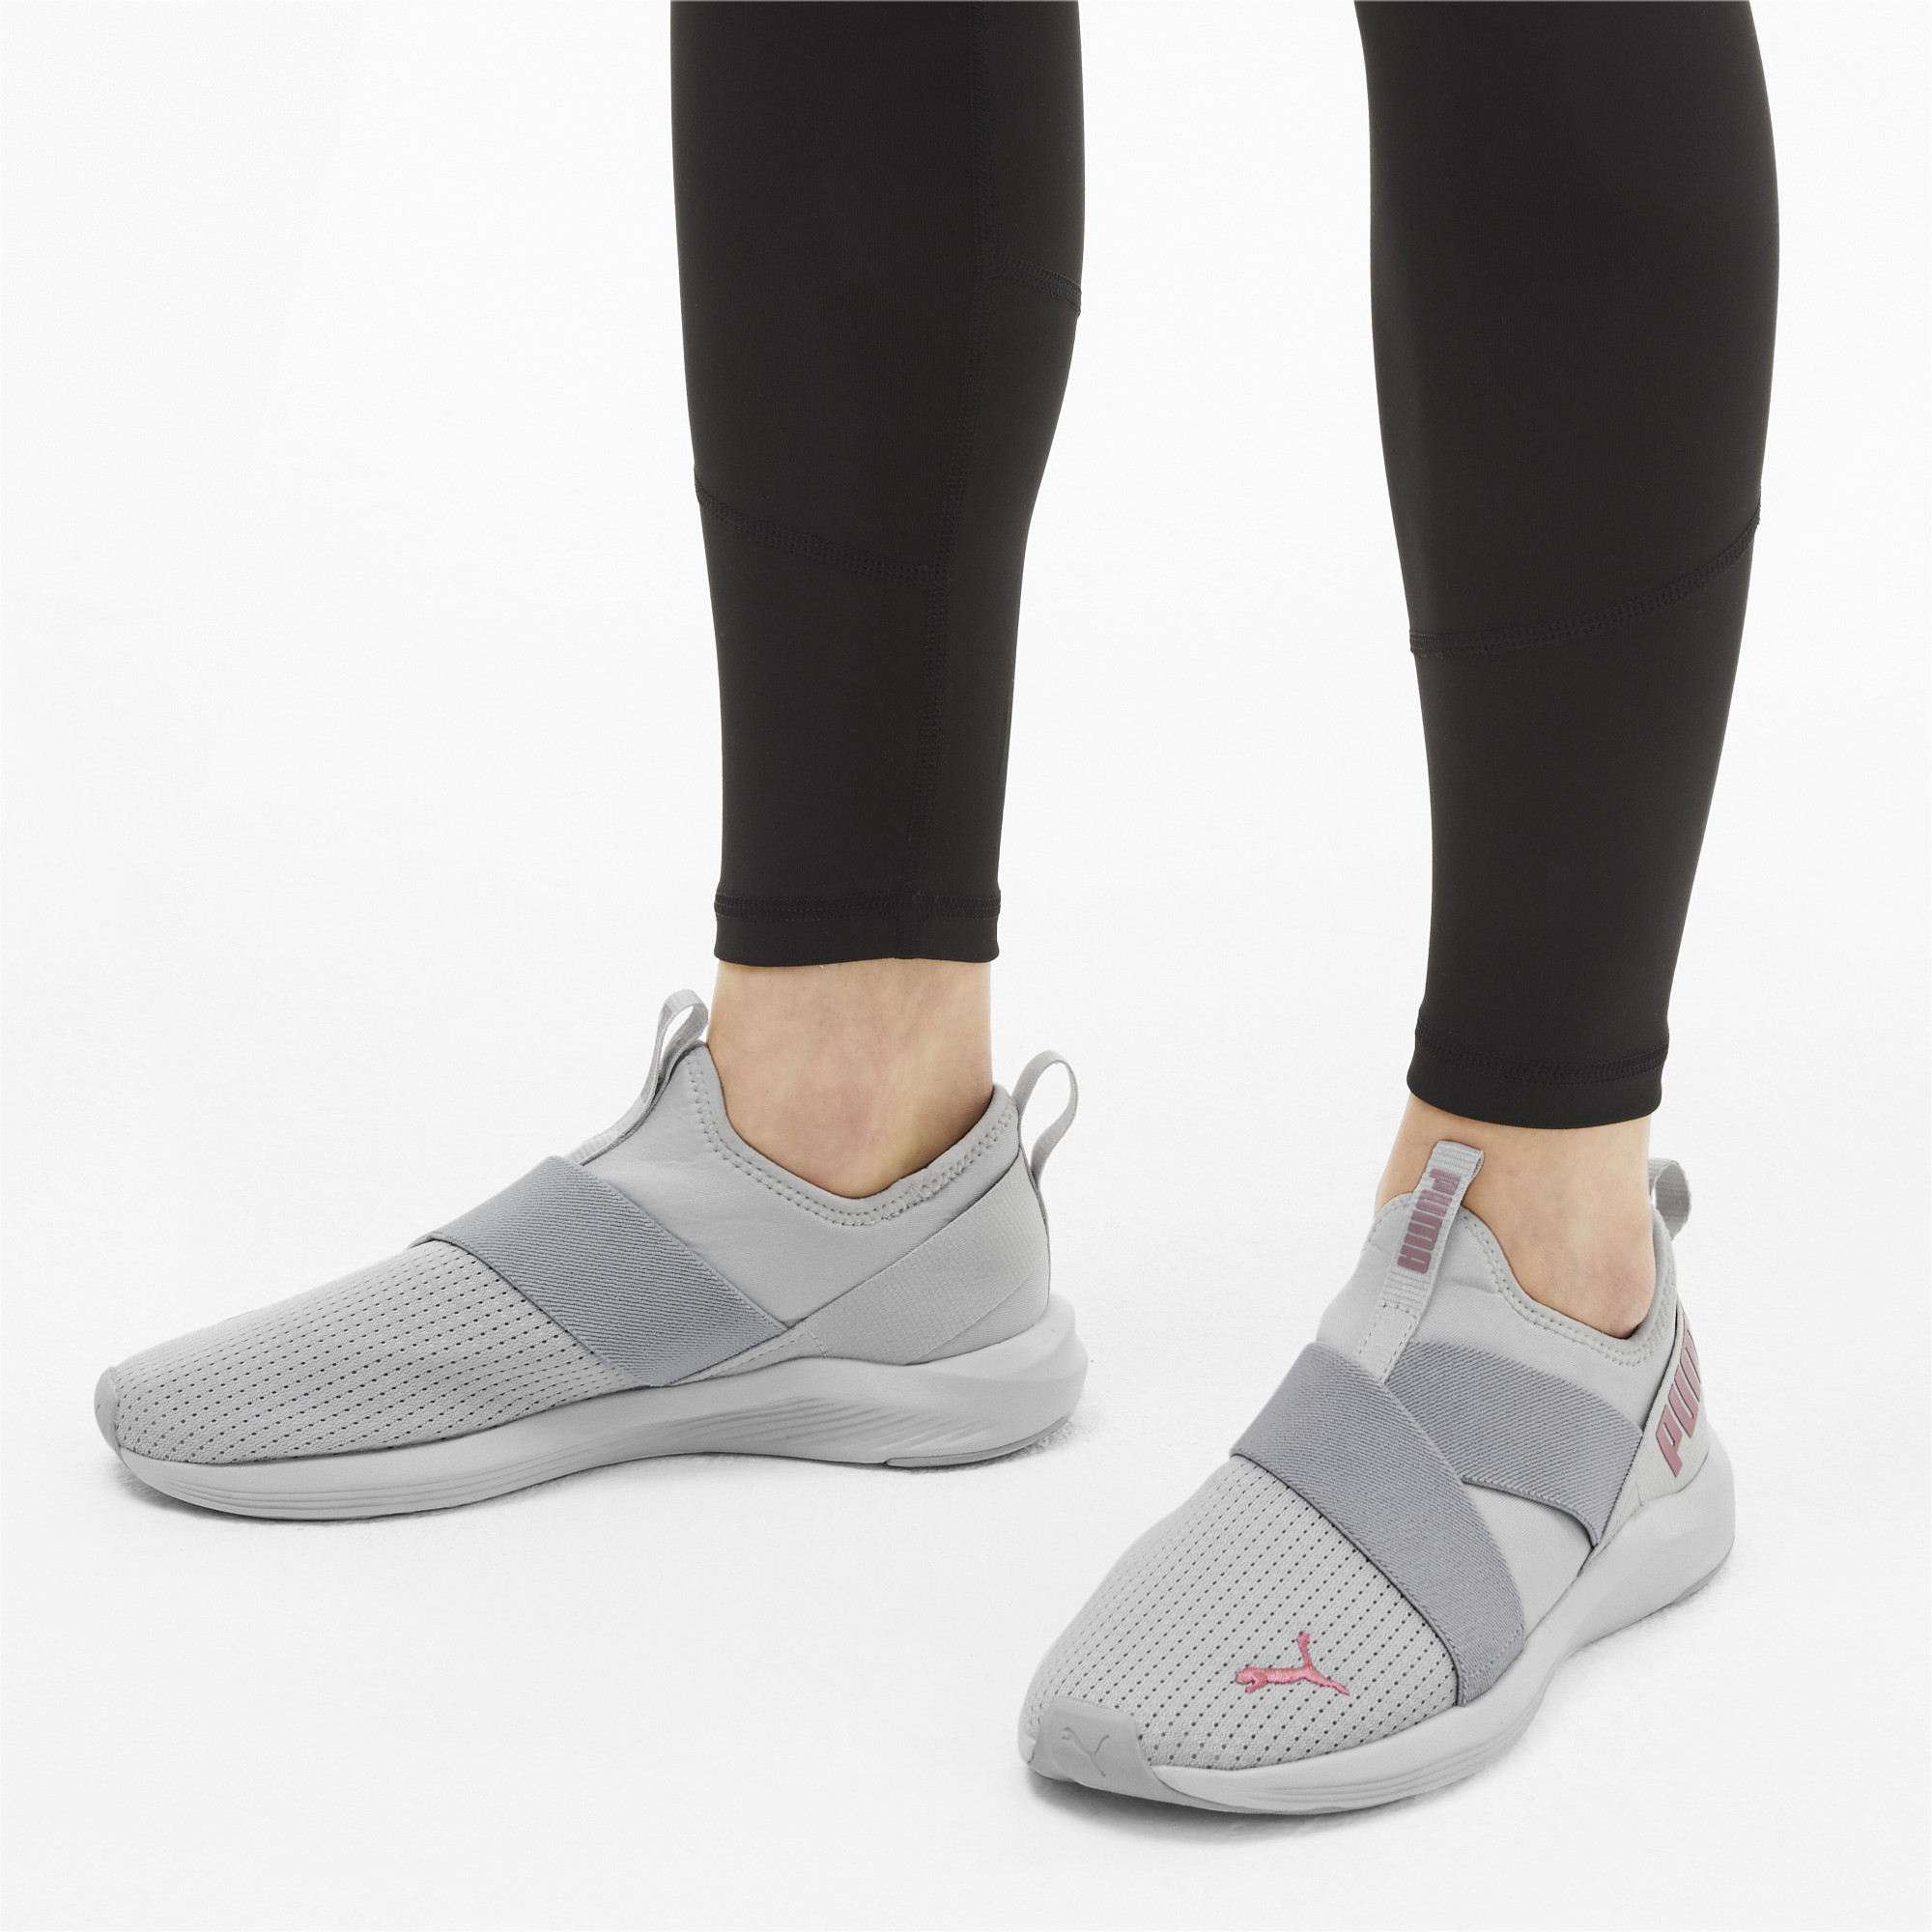 PUMA-Women-039-s-Prowl-Slip-On-Training-Shoes thumbnail 5